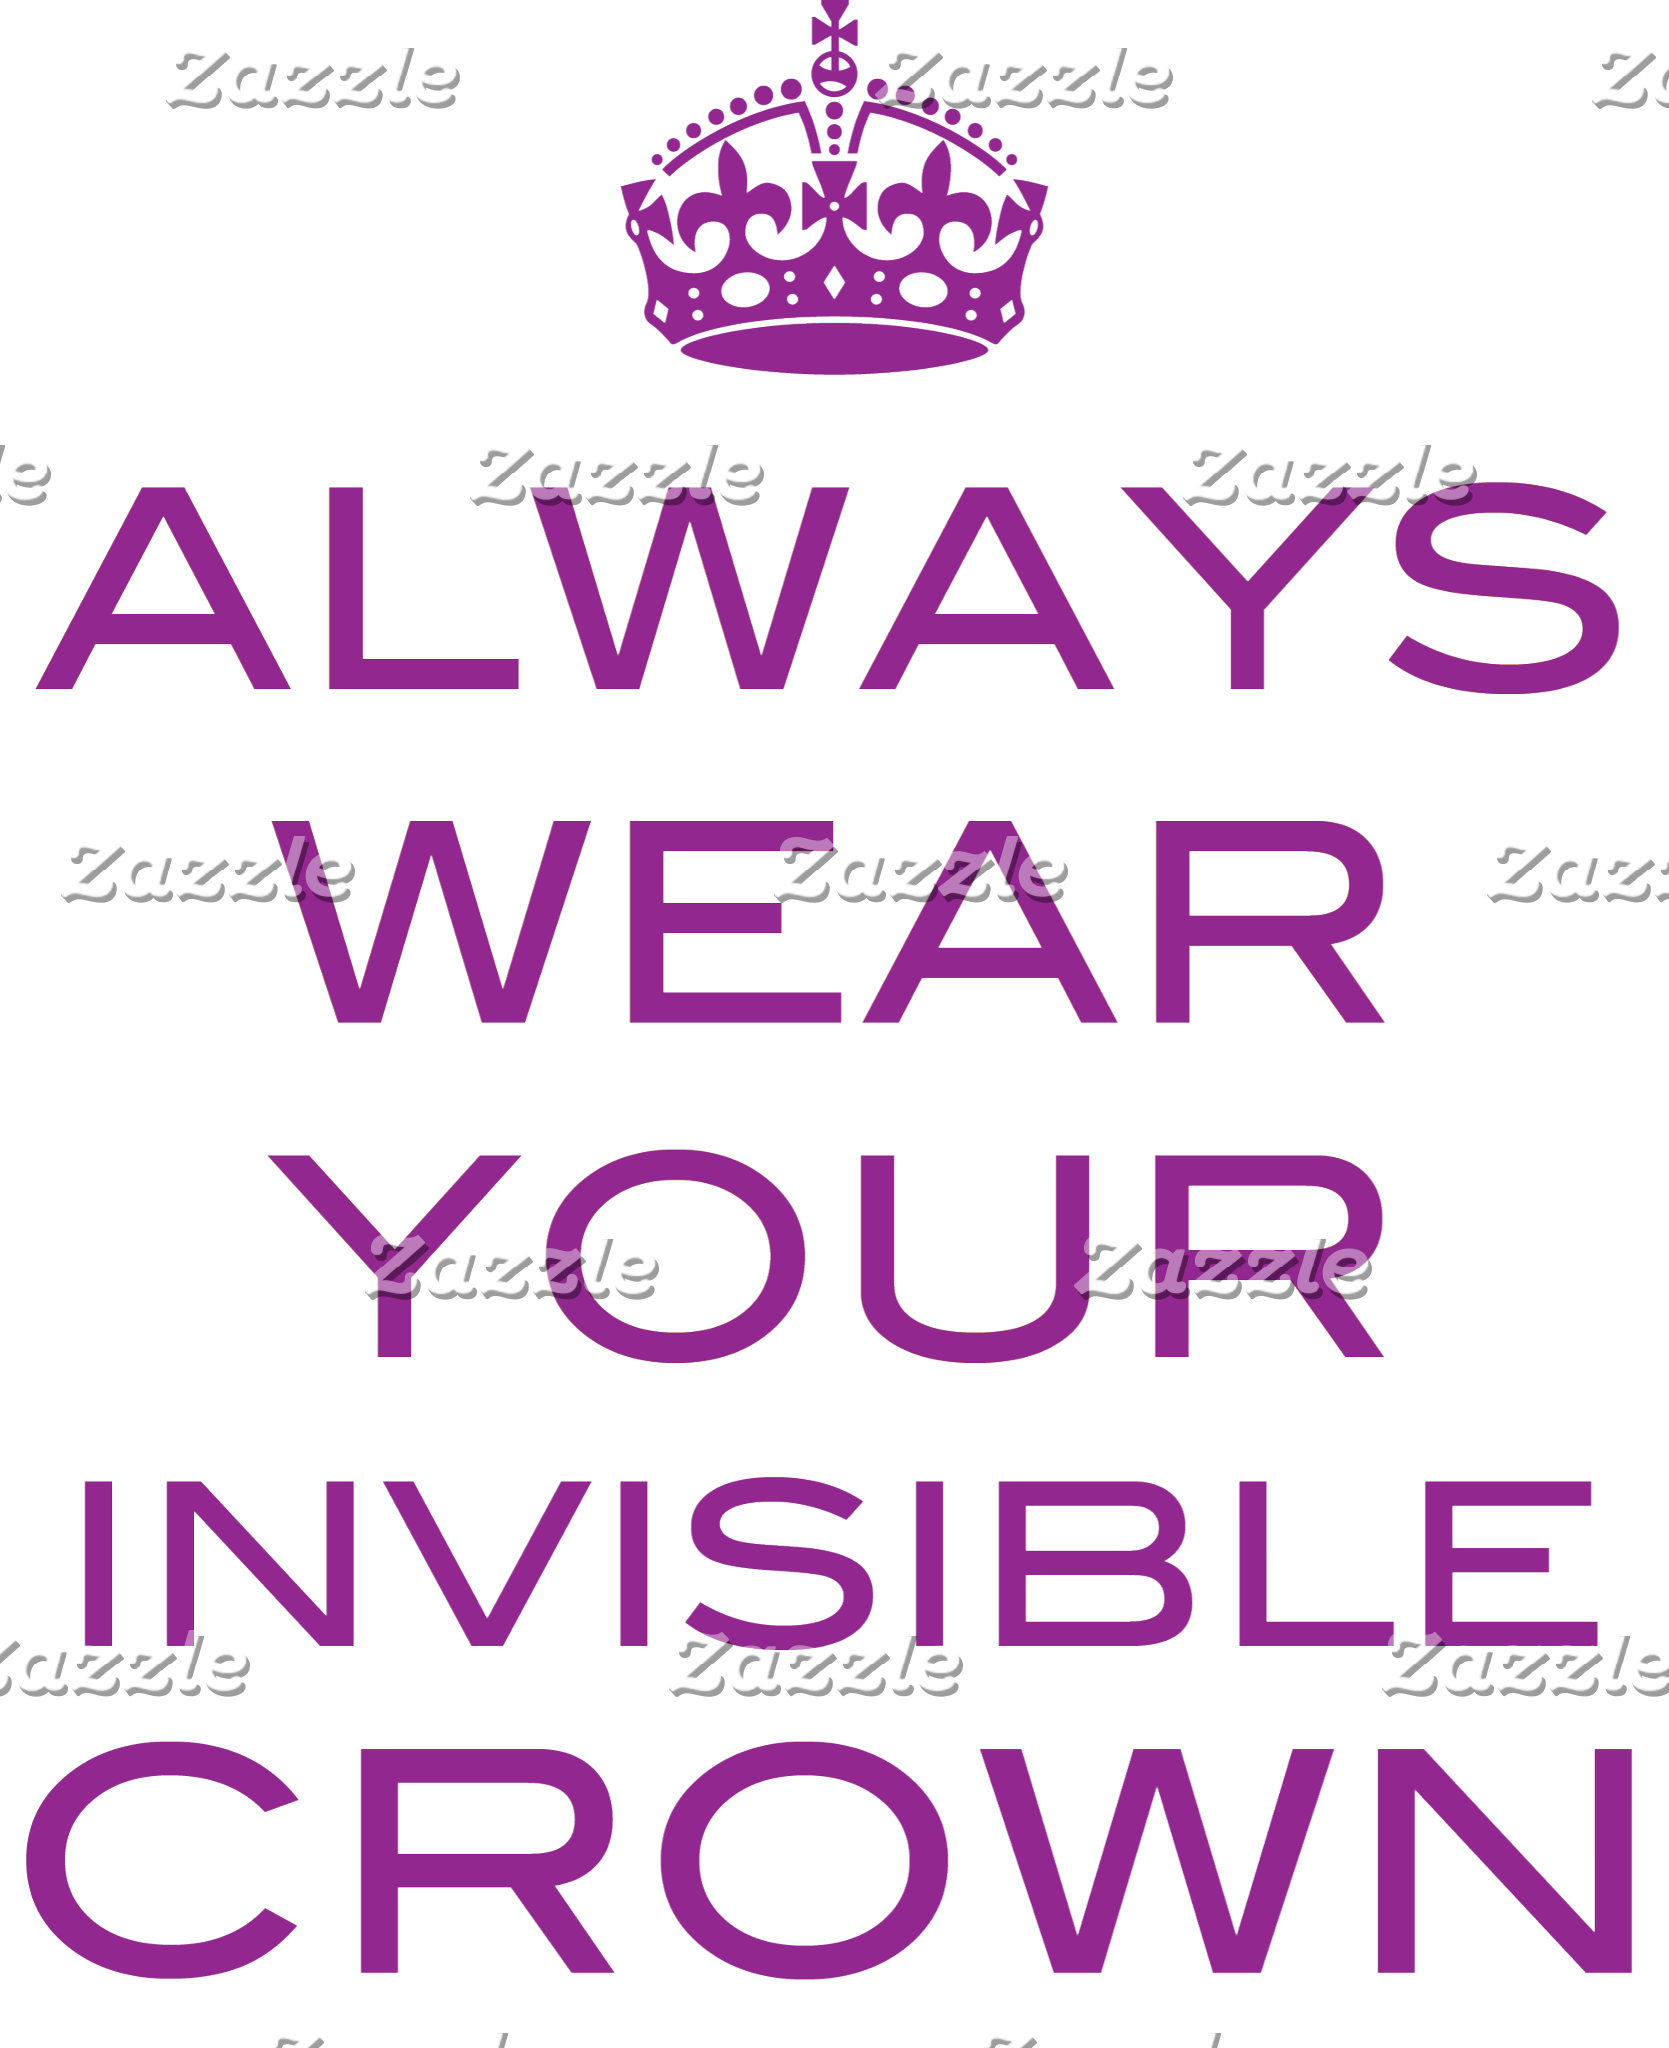 Invisible Crown